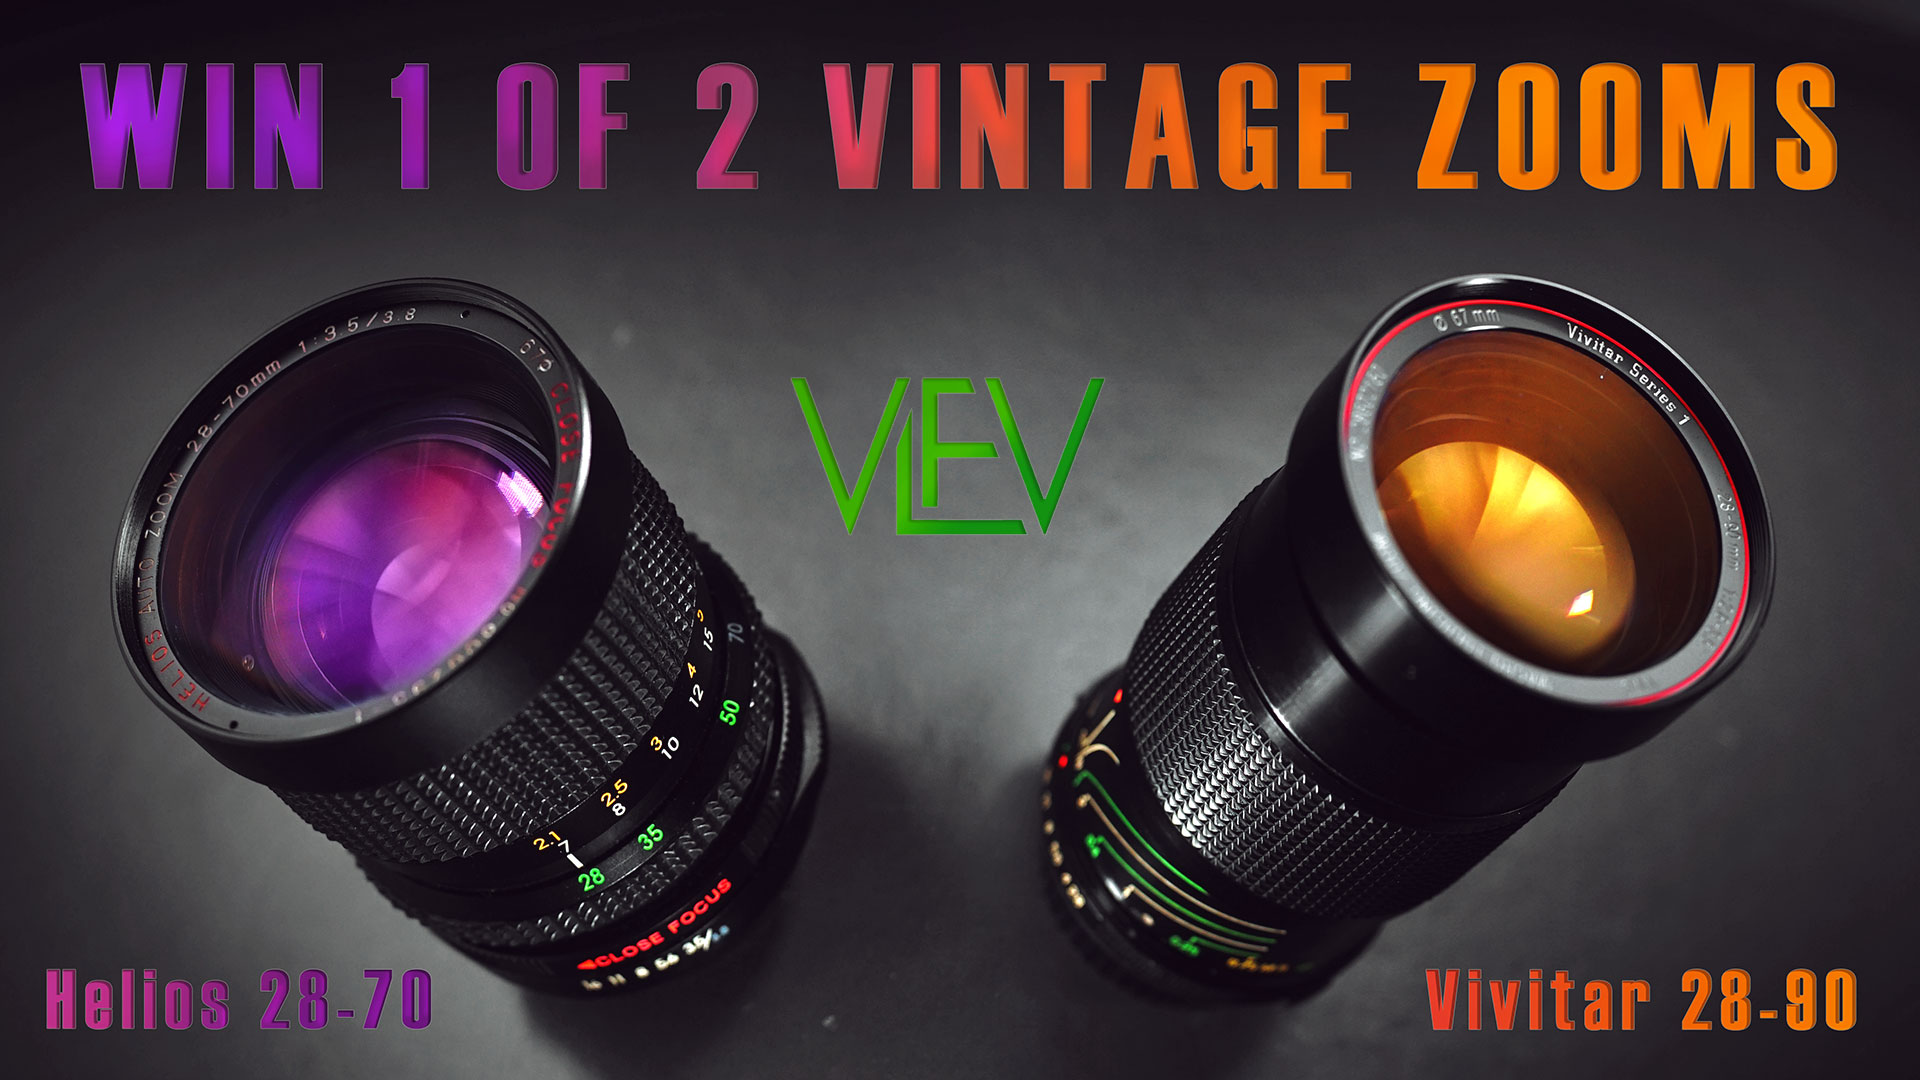 WIN 1 of 2 Vintage Zoom Lenses | Helios & Vivitar